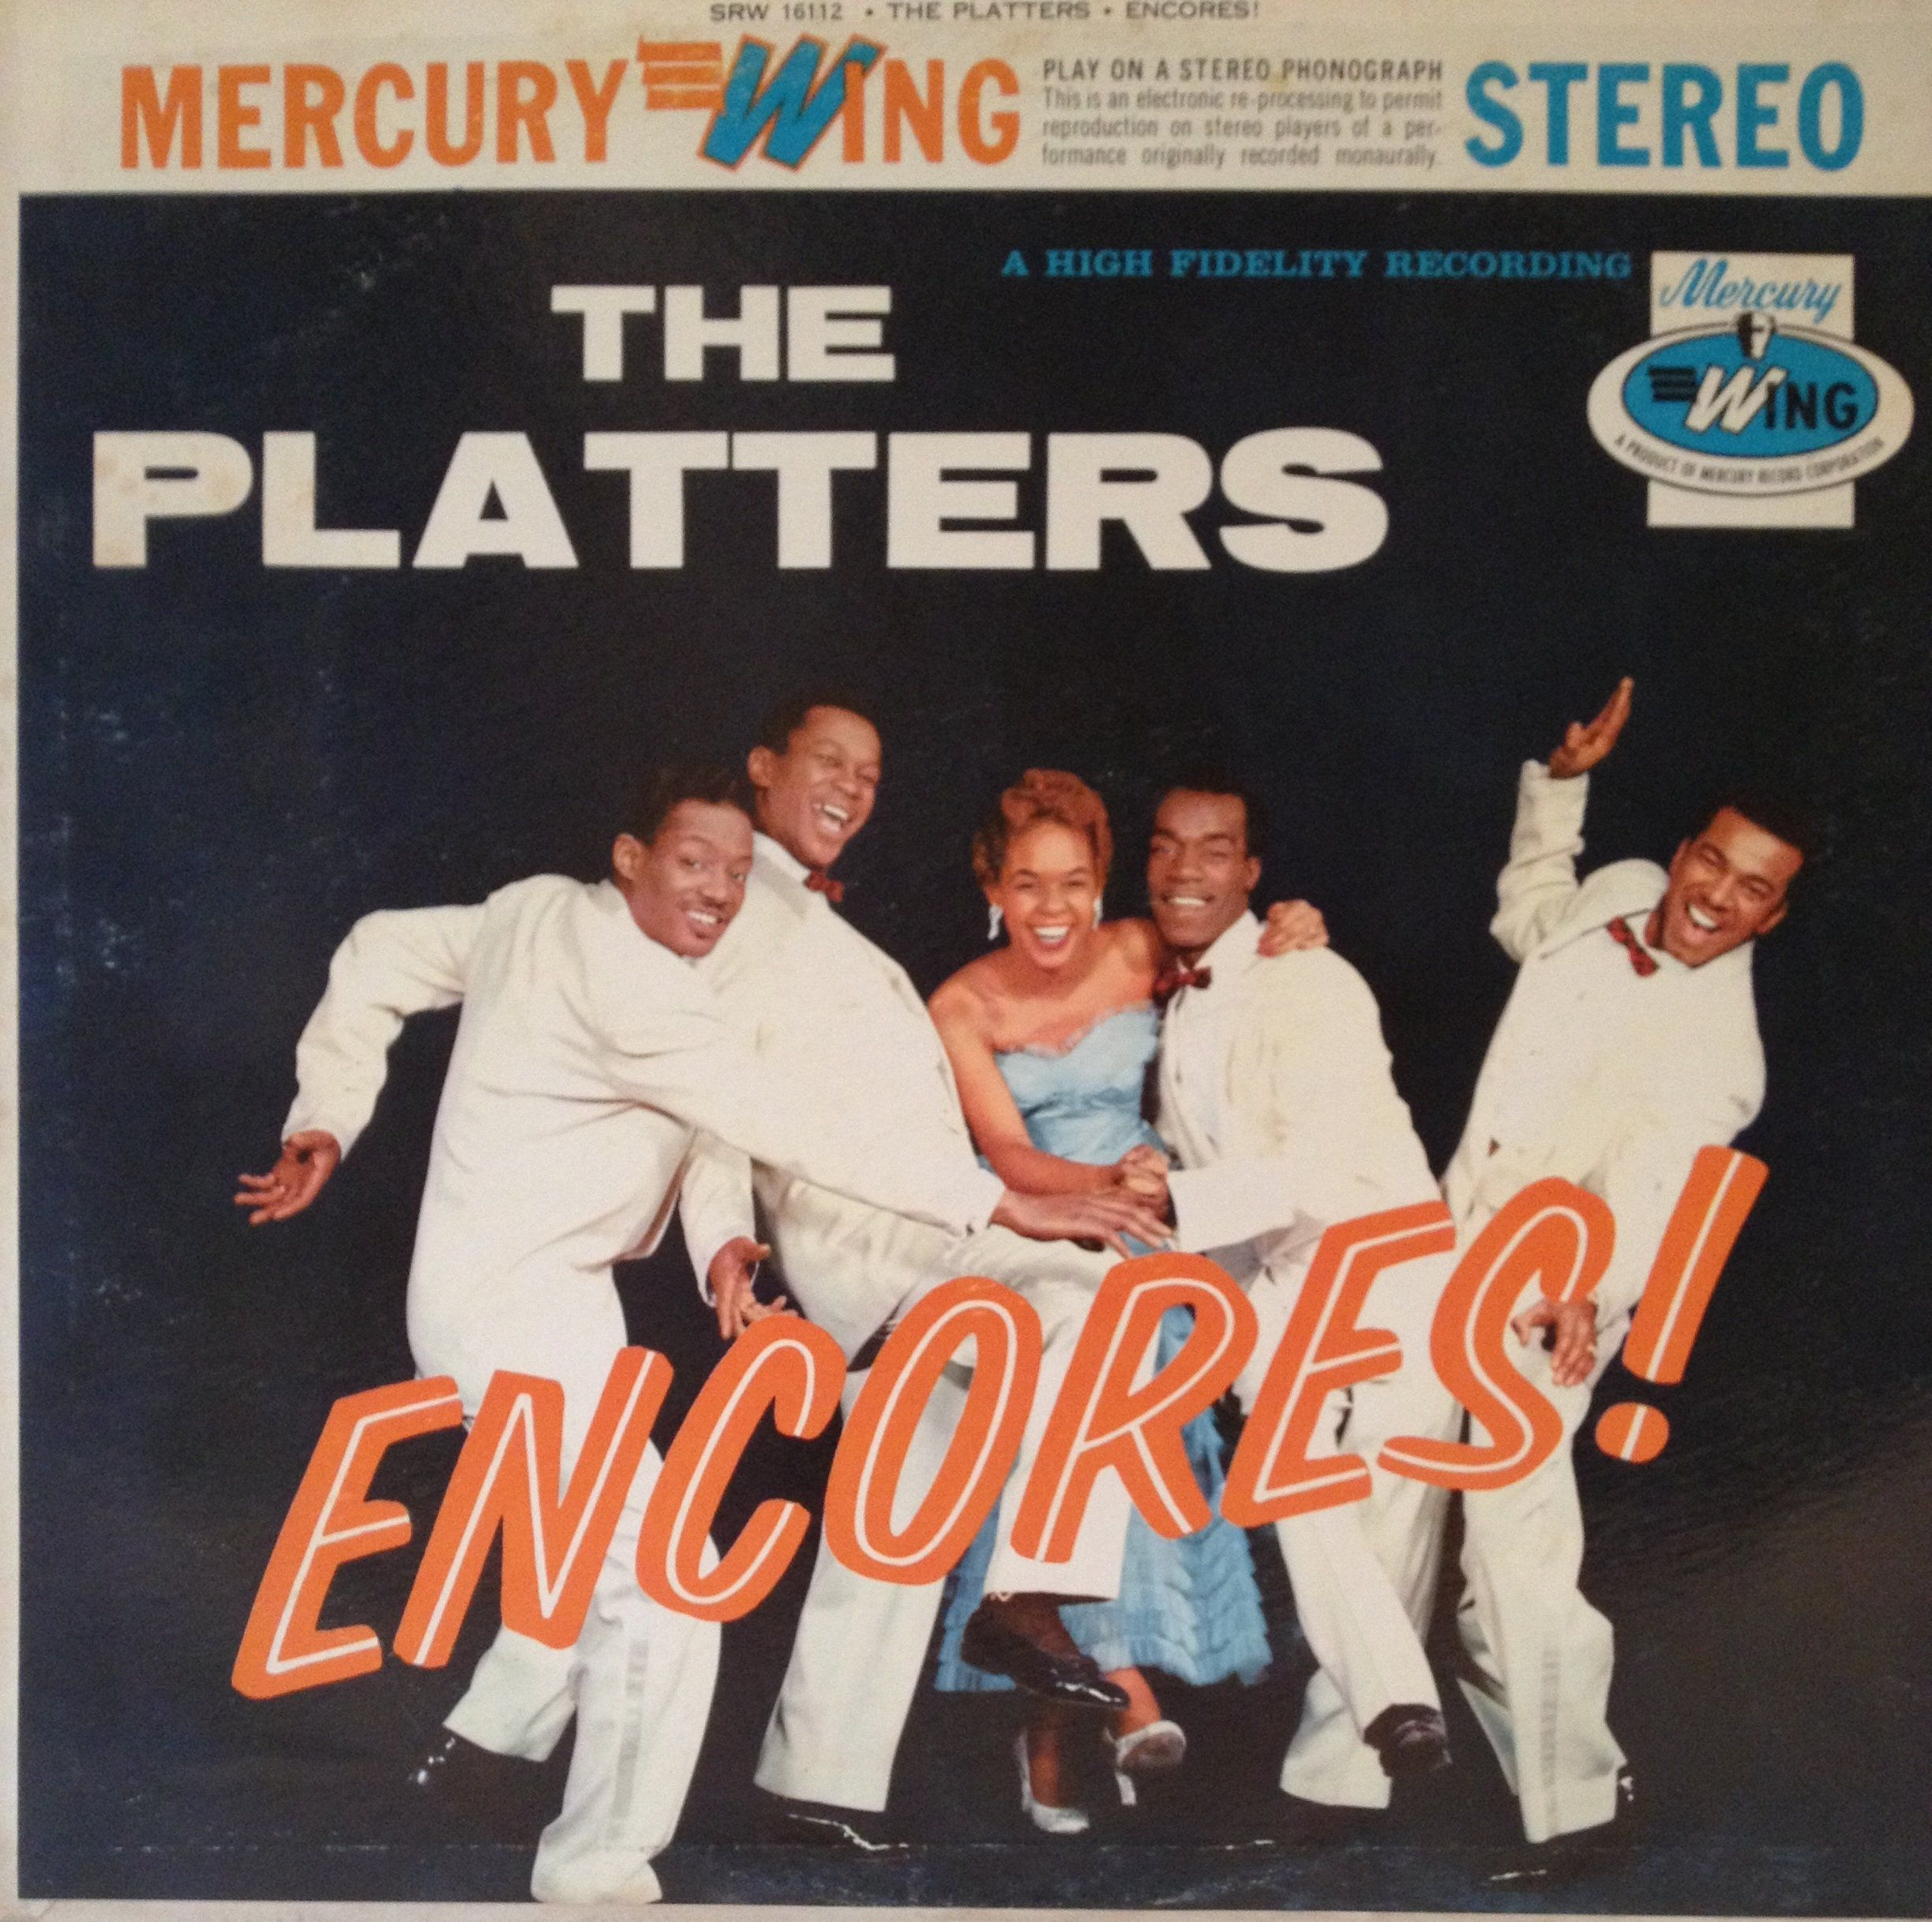 The Platters Encores 1959 Allmusic Says The